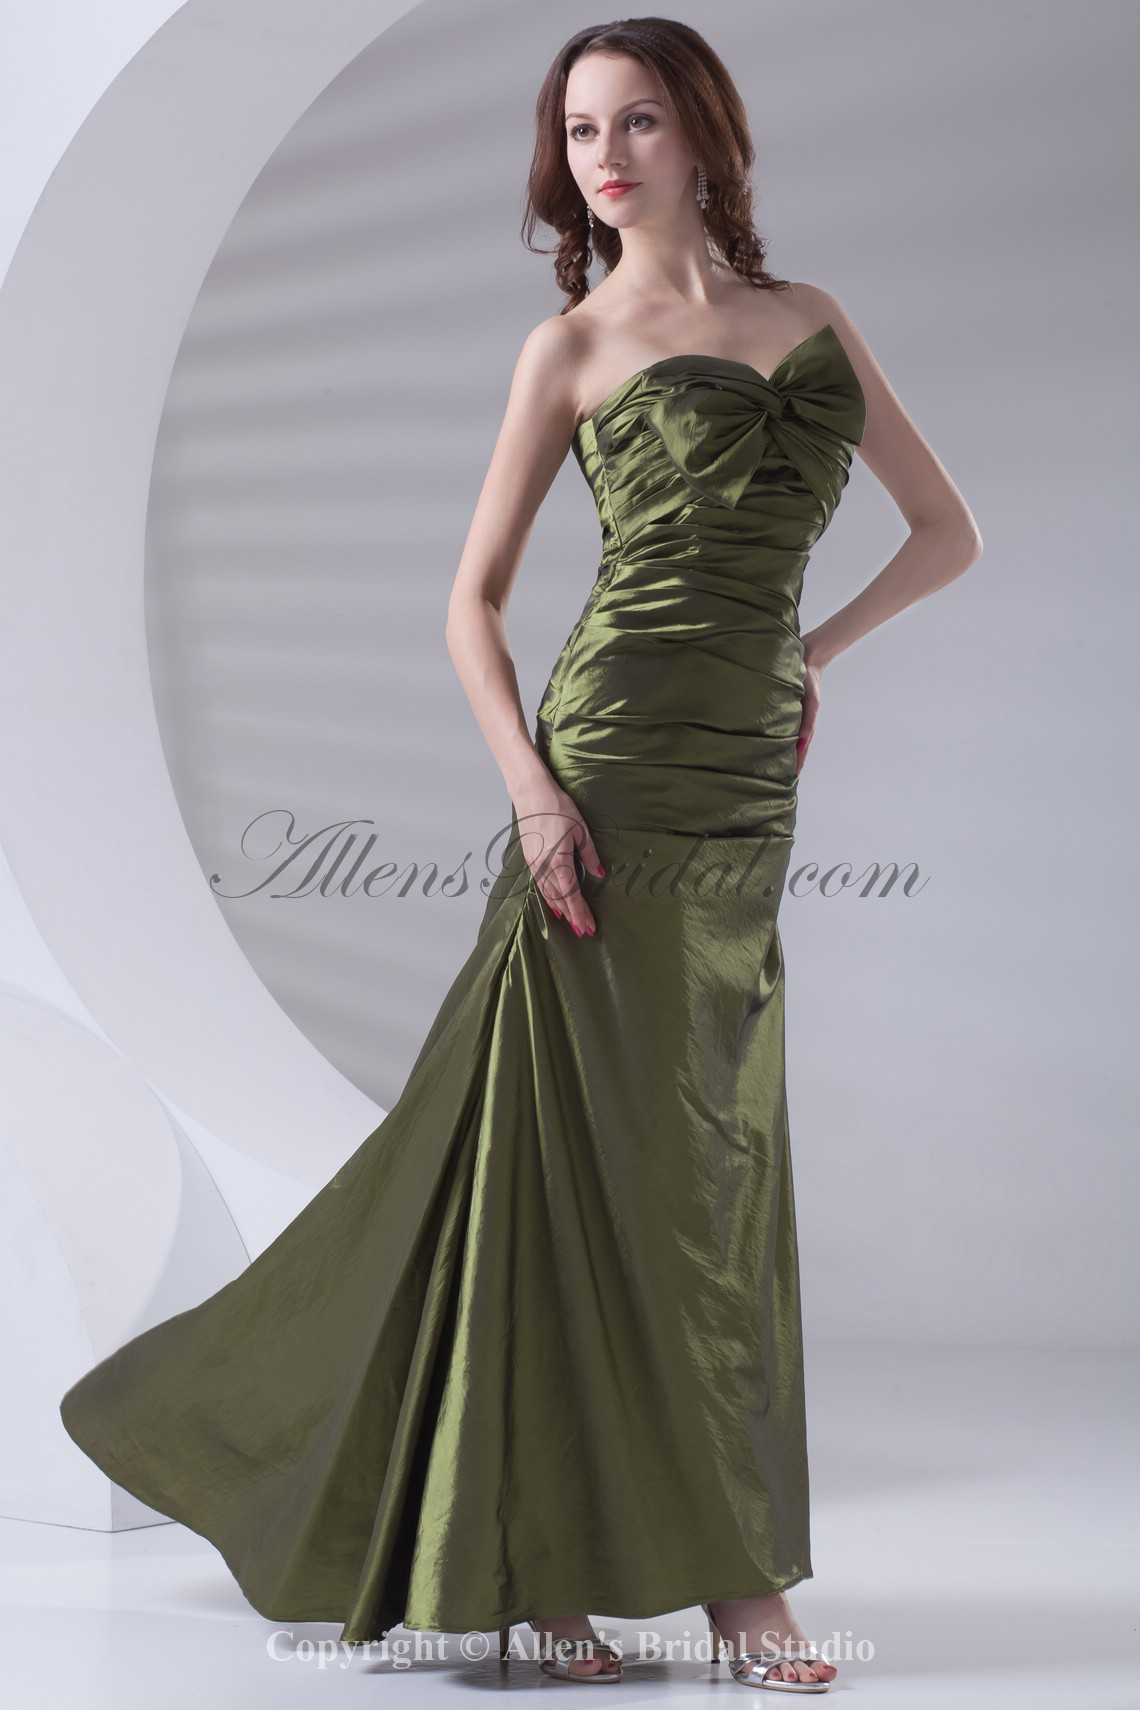 /406-3246/taffeta-strapless-neckline-a-line-floor-length-directionally-ruched-prom-dress.jpg